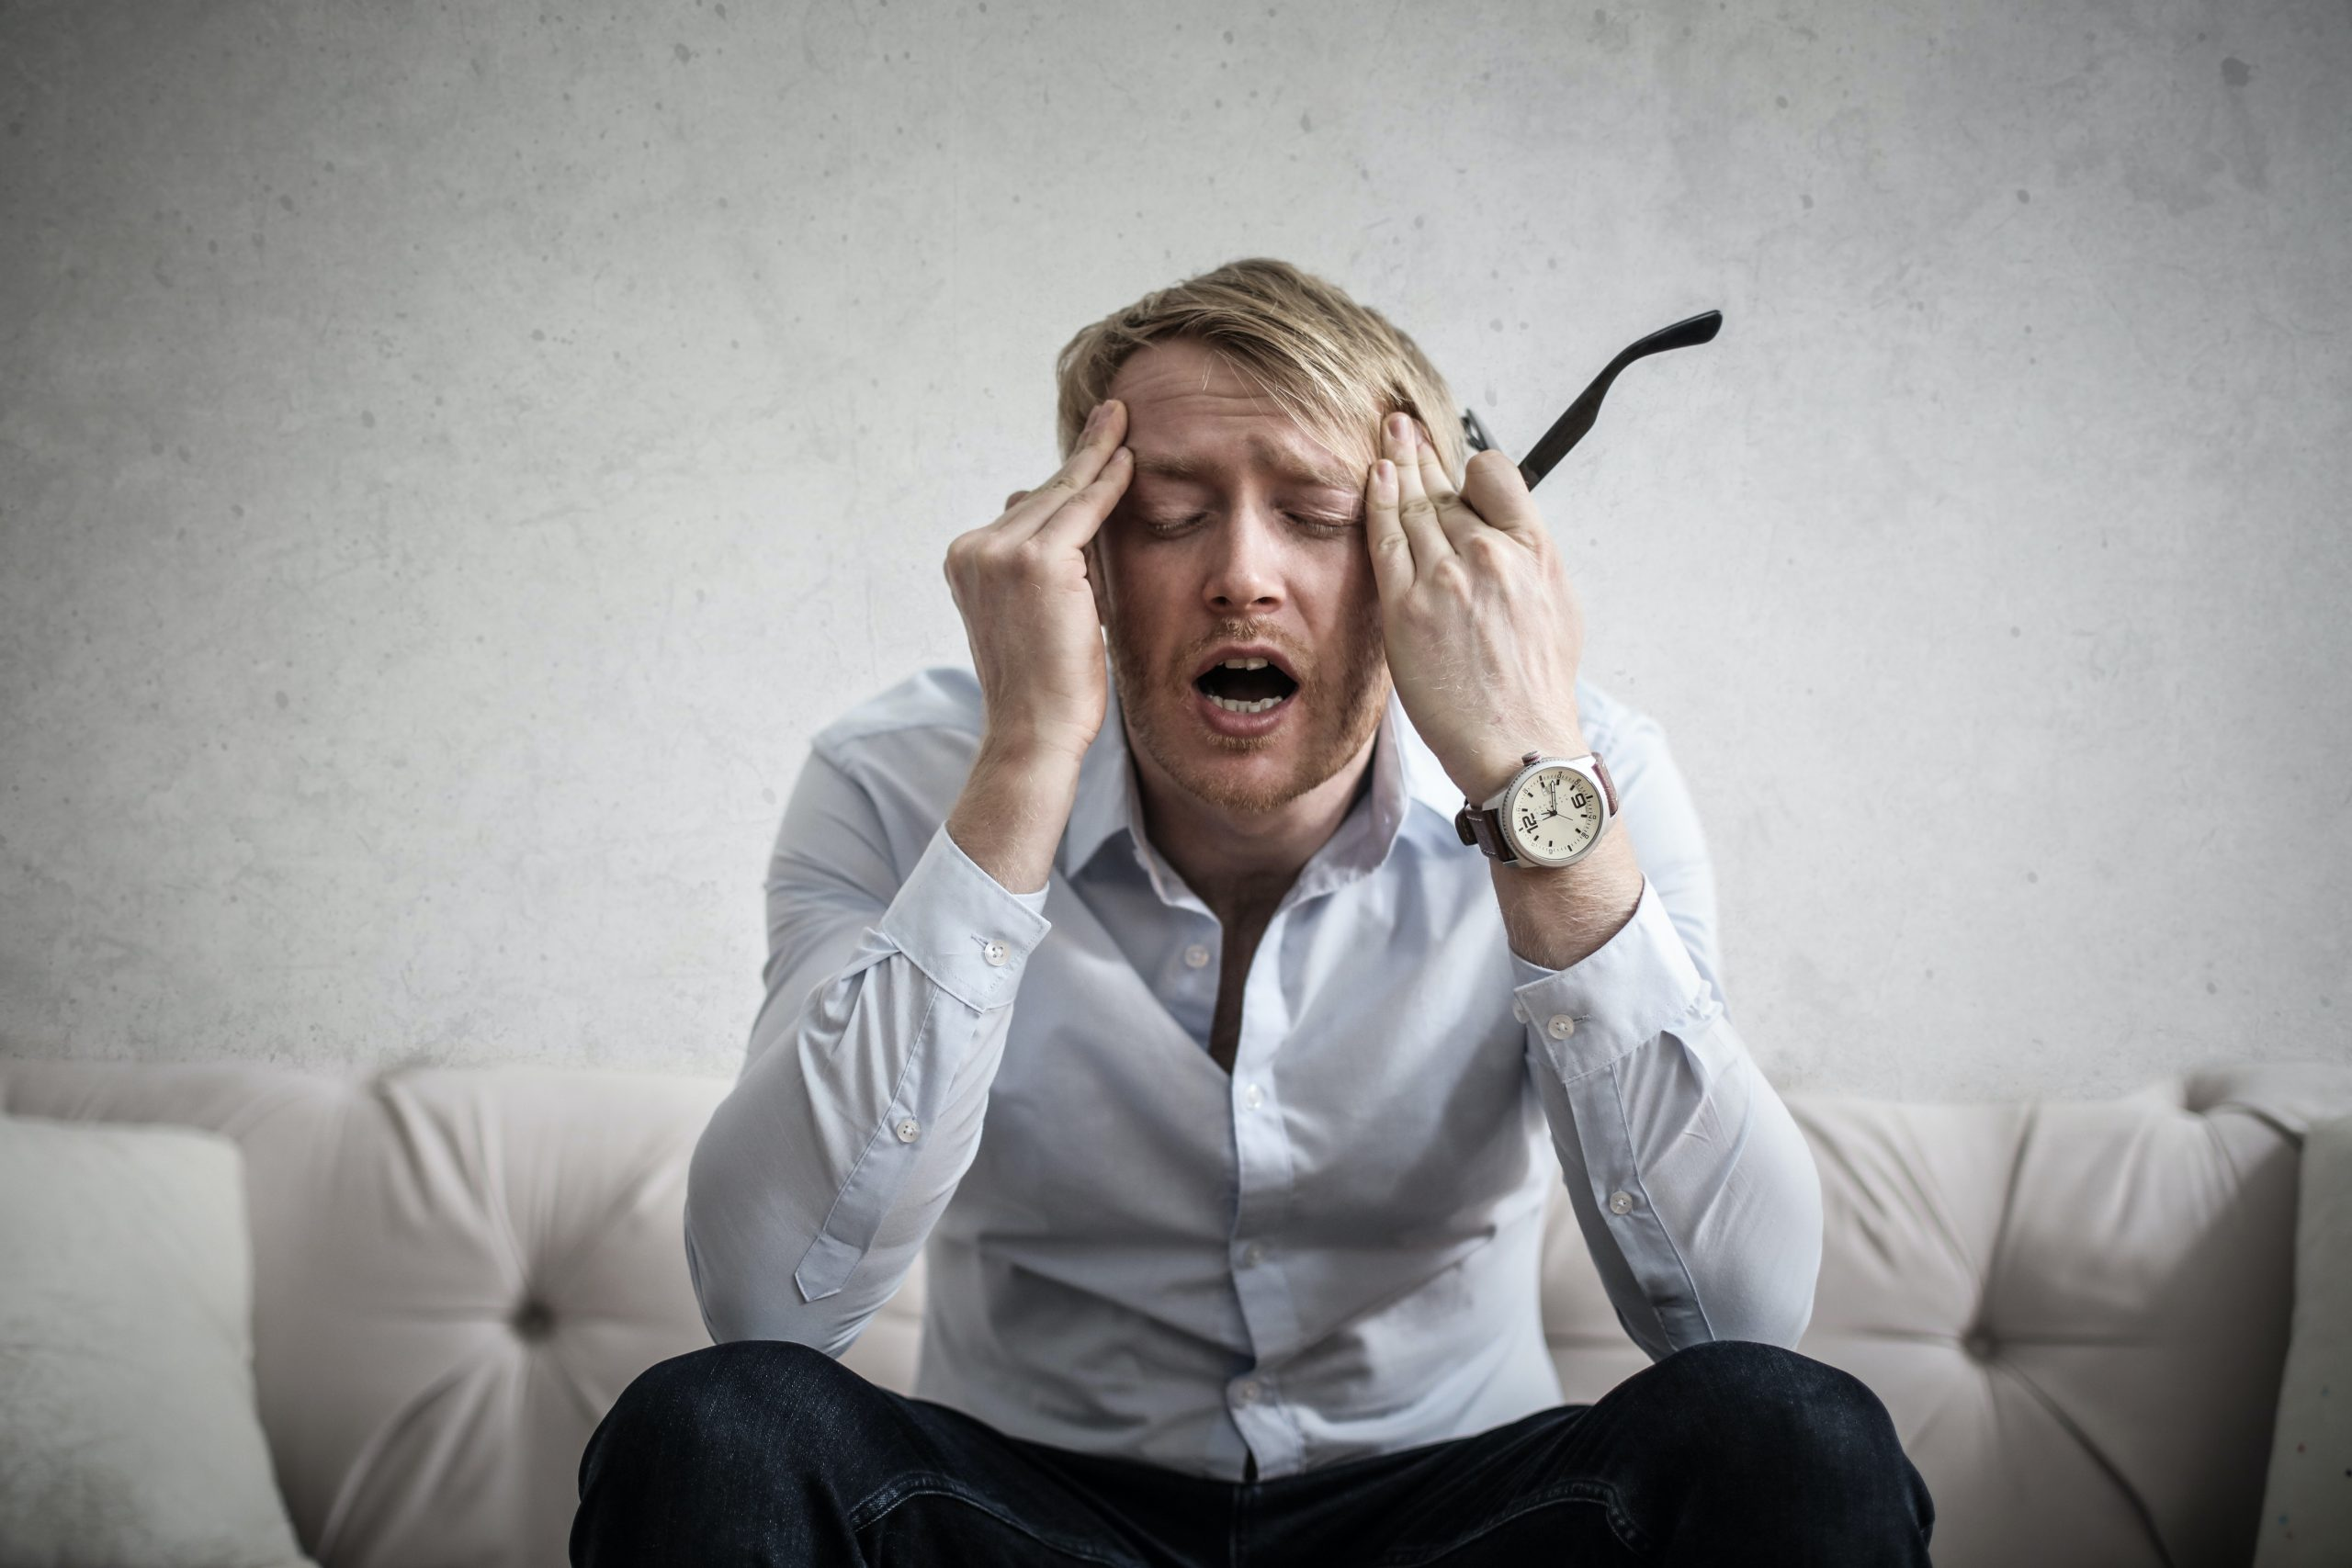 Atychiphobia, Fear of Failure: How to Overcome It?